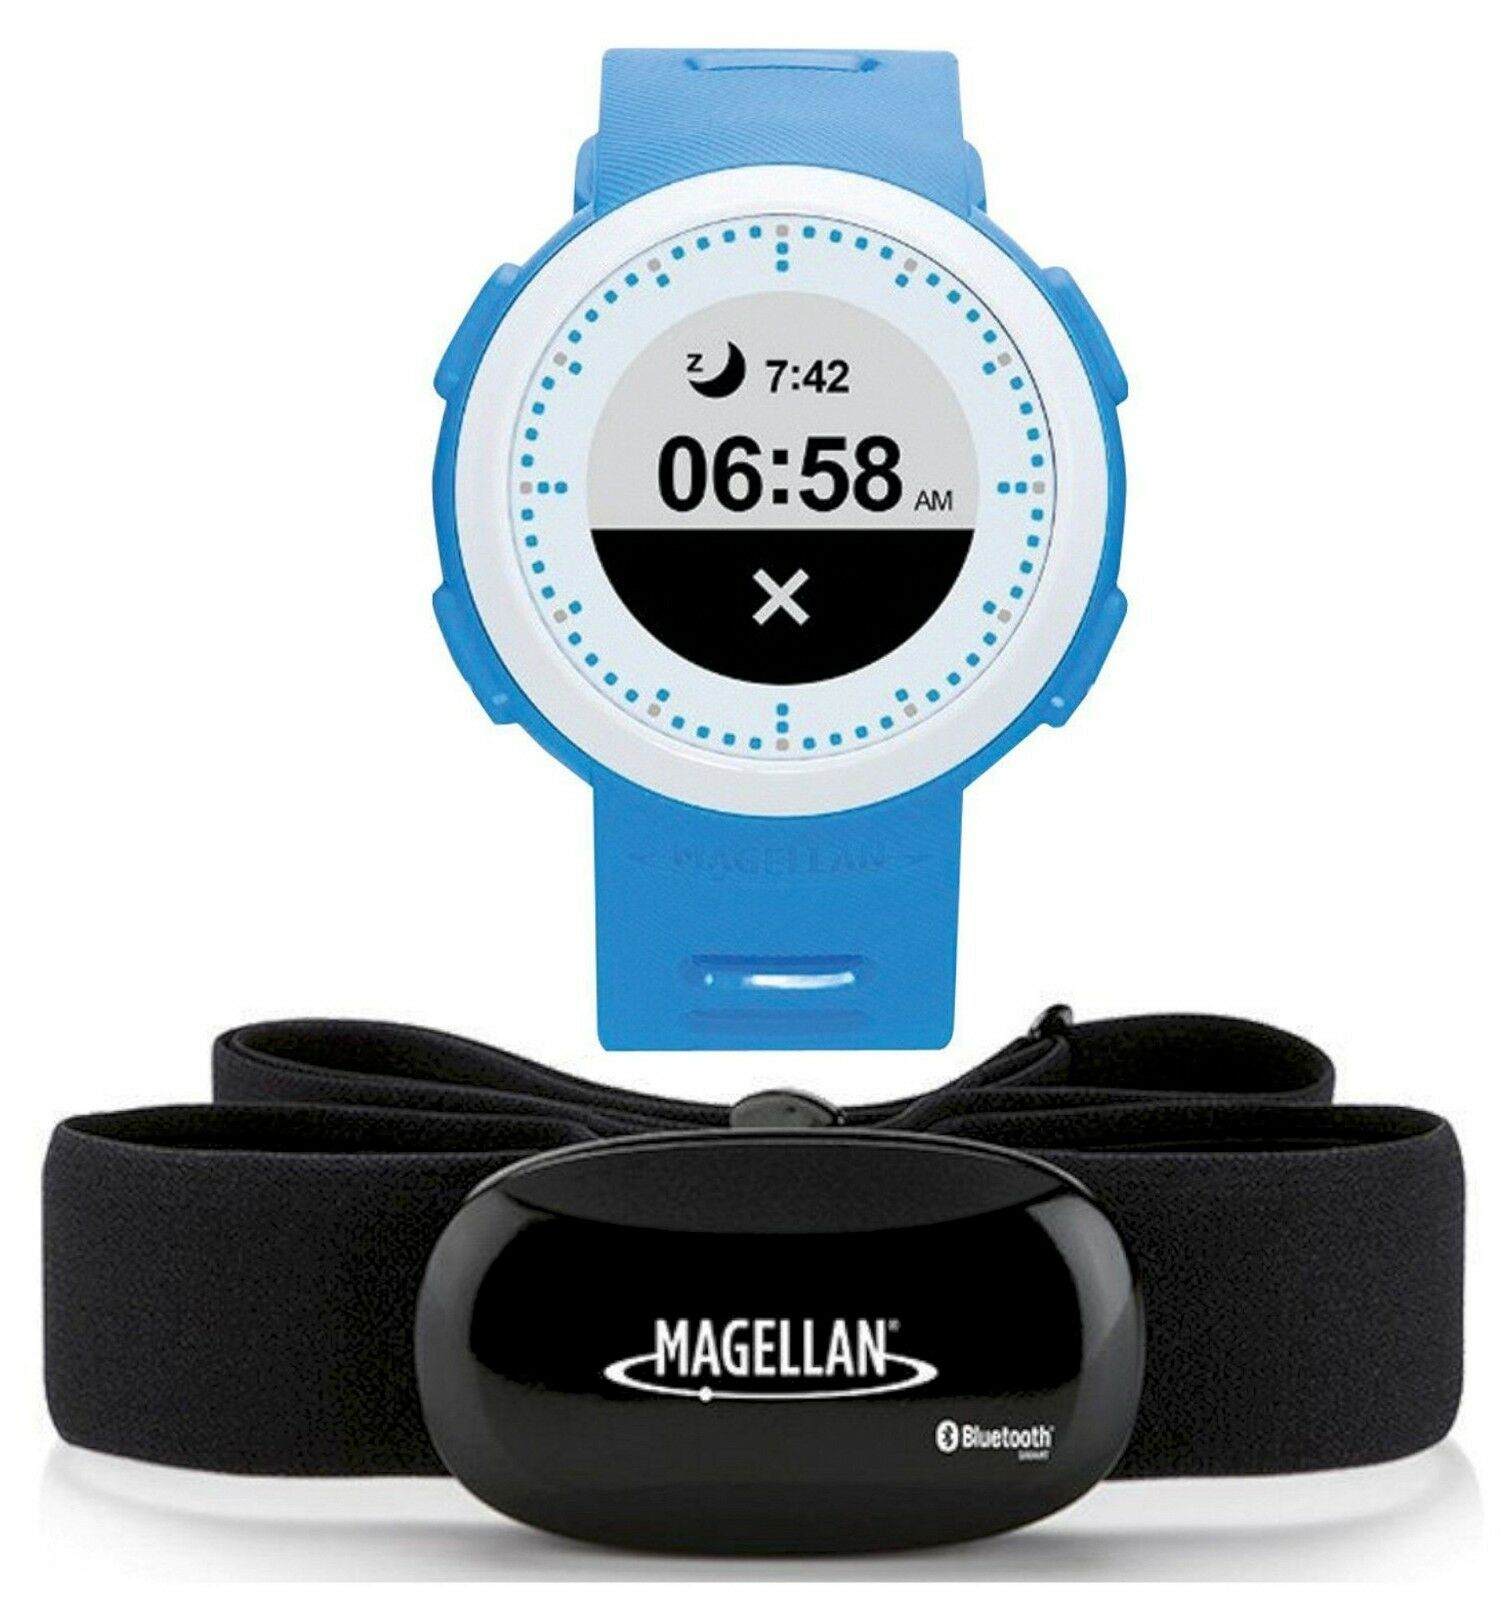 NEW Magellan Echo FIT Smart + HRM Sports Fitness Watch bluee White blueetooth